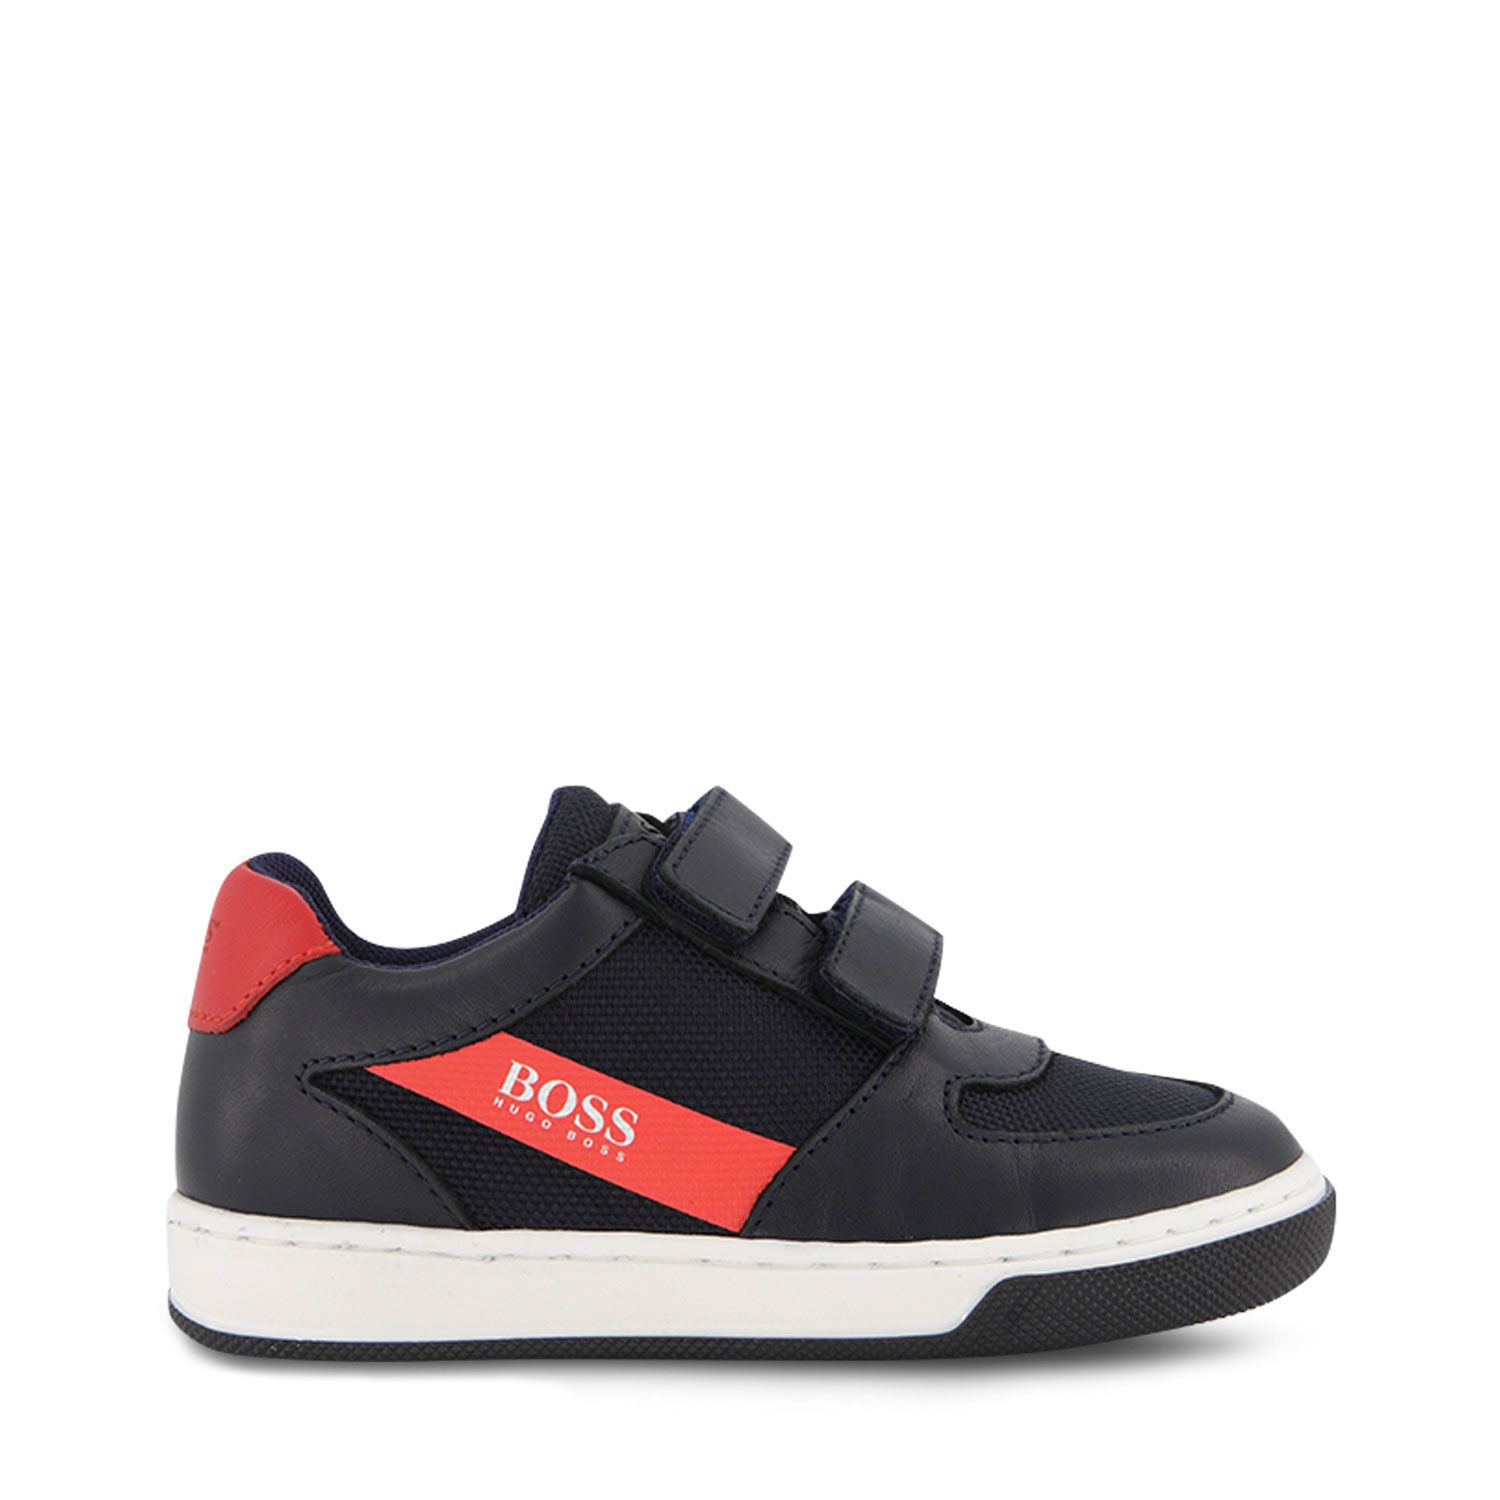 Picture of Boss J09160 kids sneakers navy